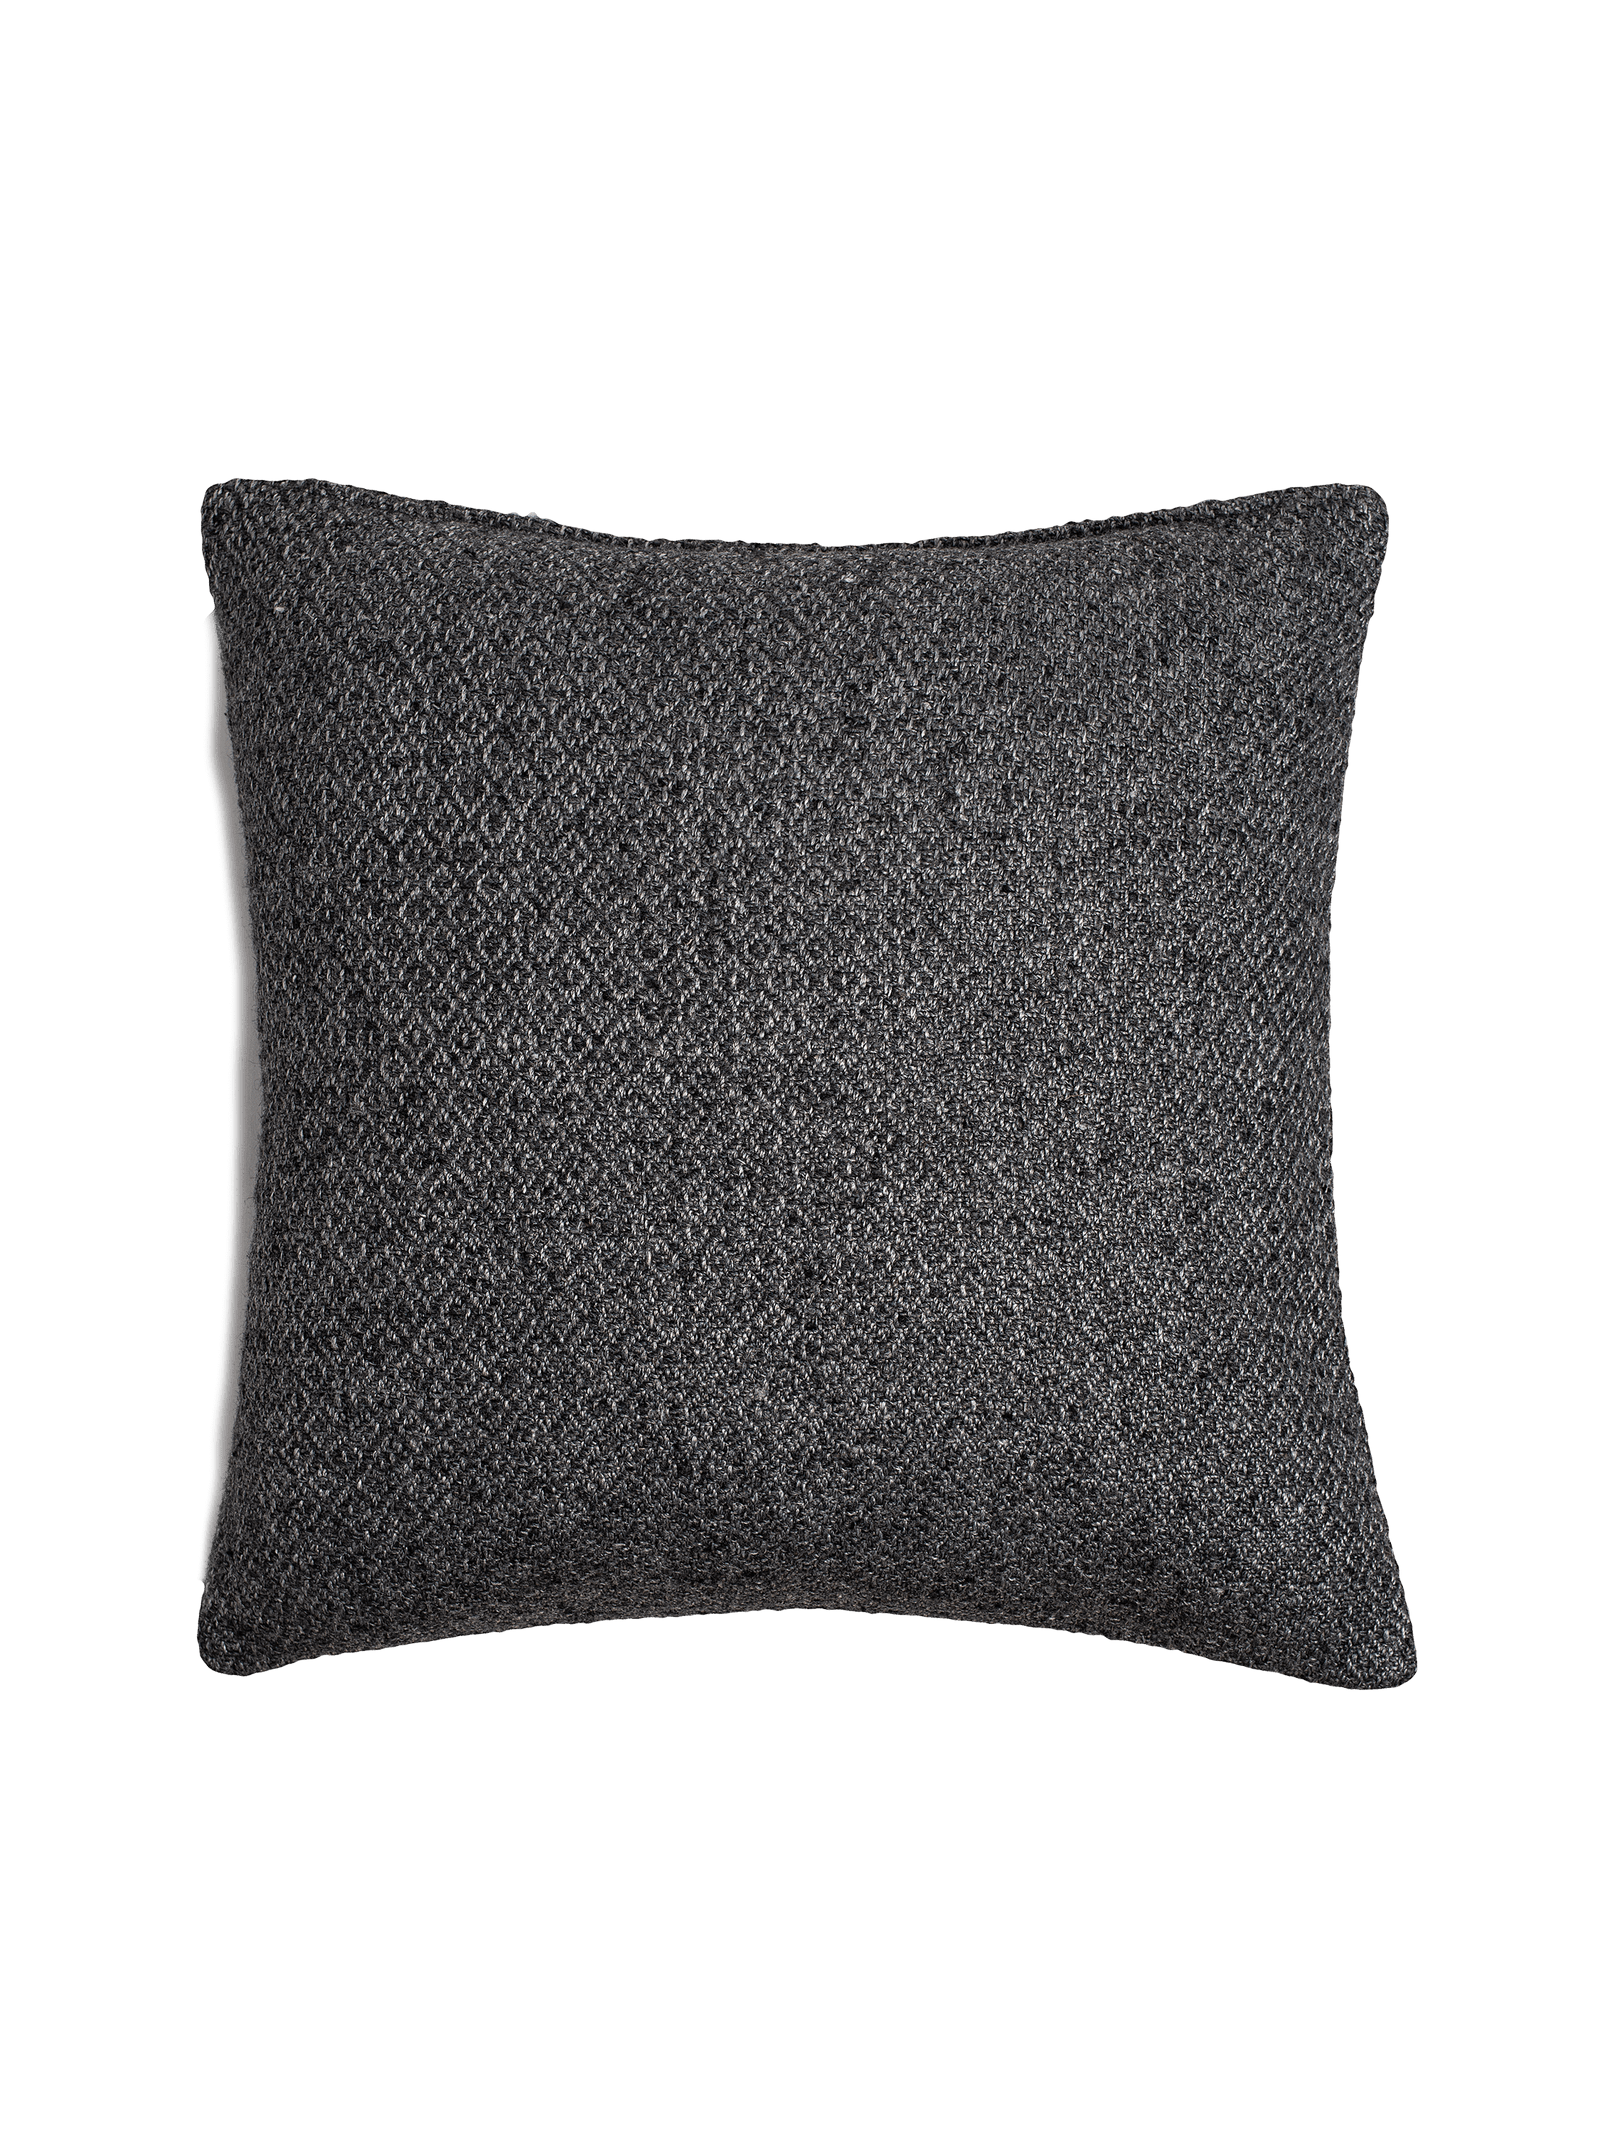 Double Diamond Pillow Cover - Charcoal